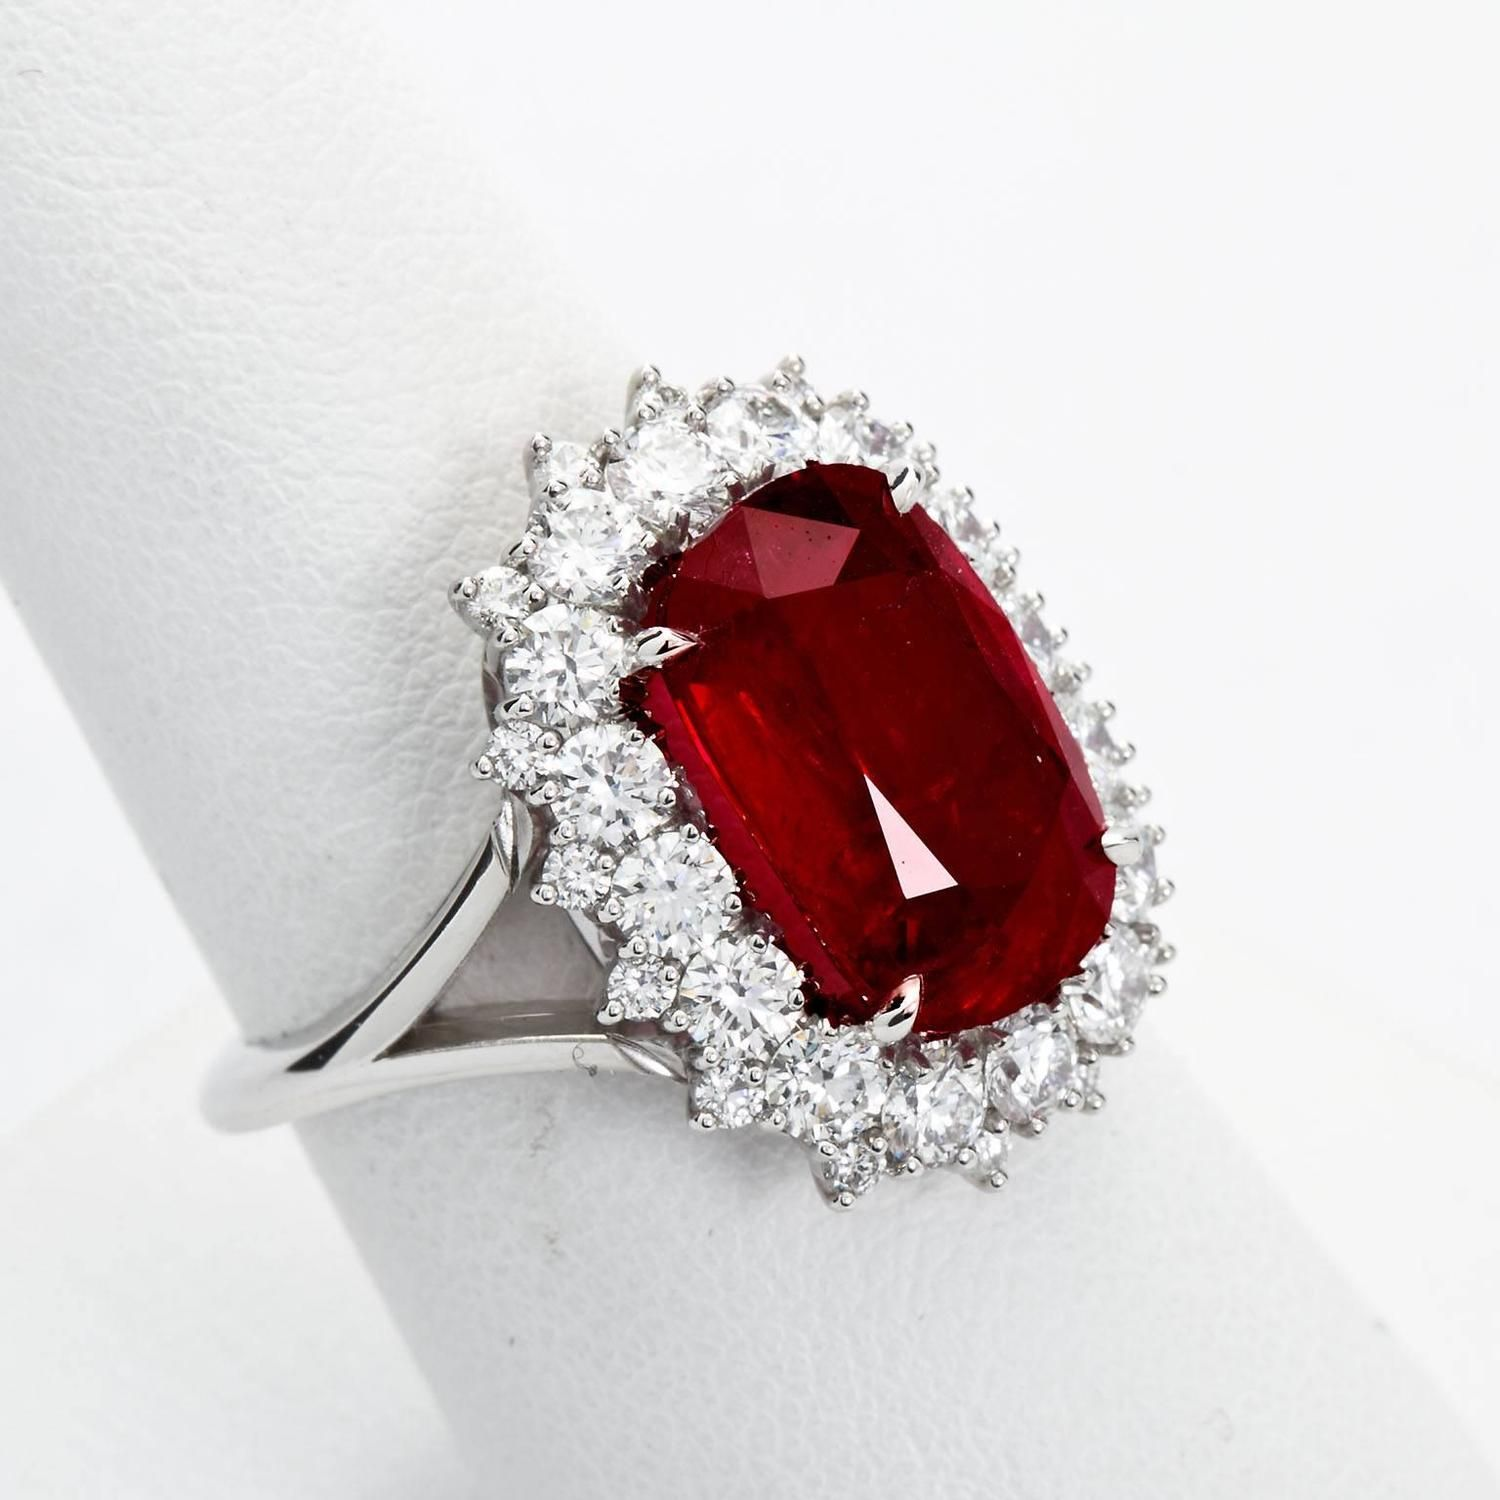 5 95 carat cushion cut mozambique ruby pigeon blood diamond